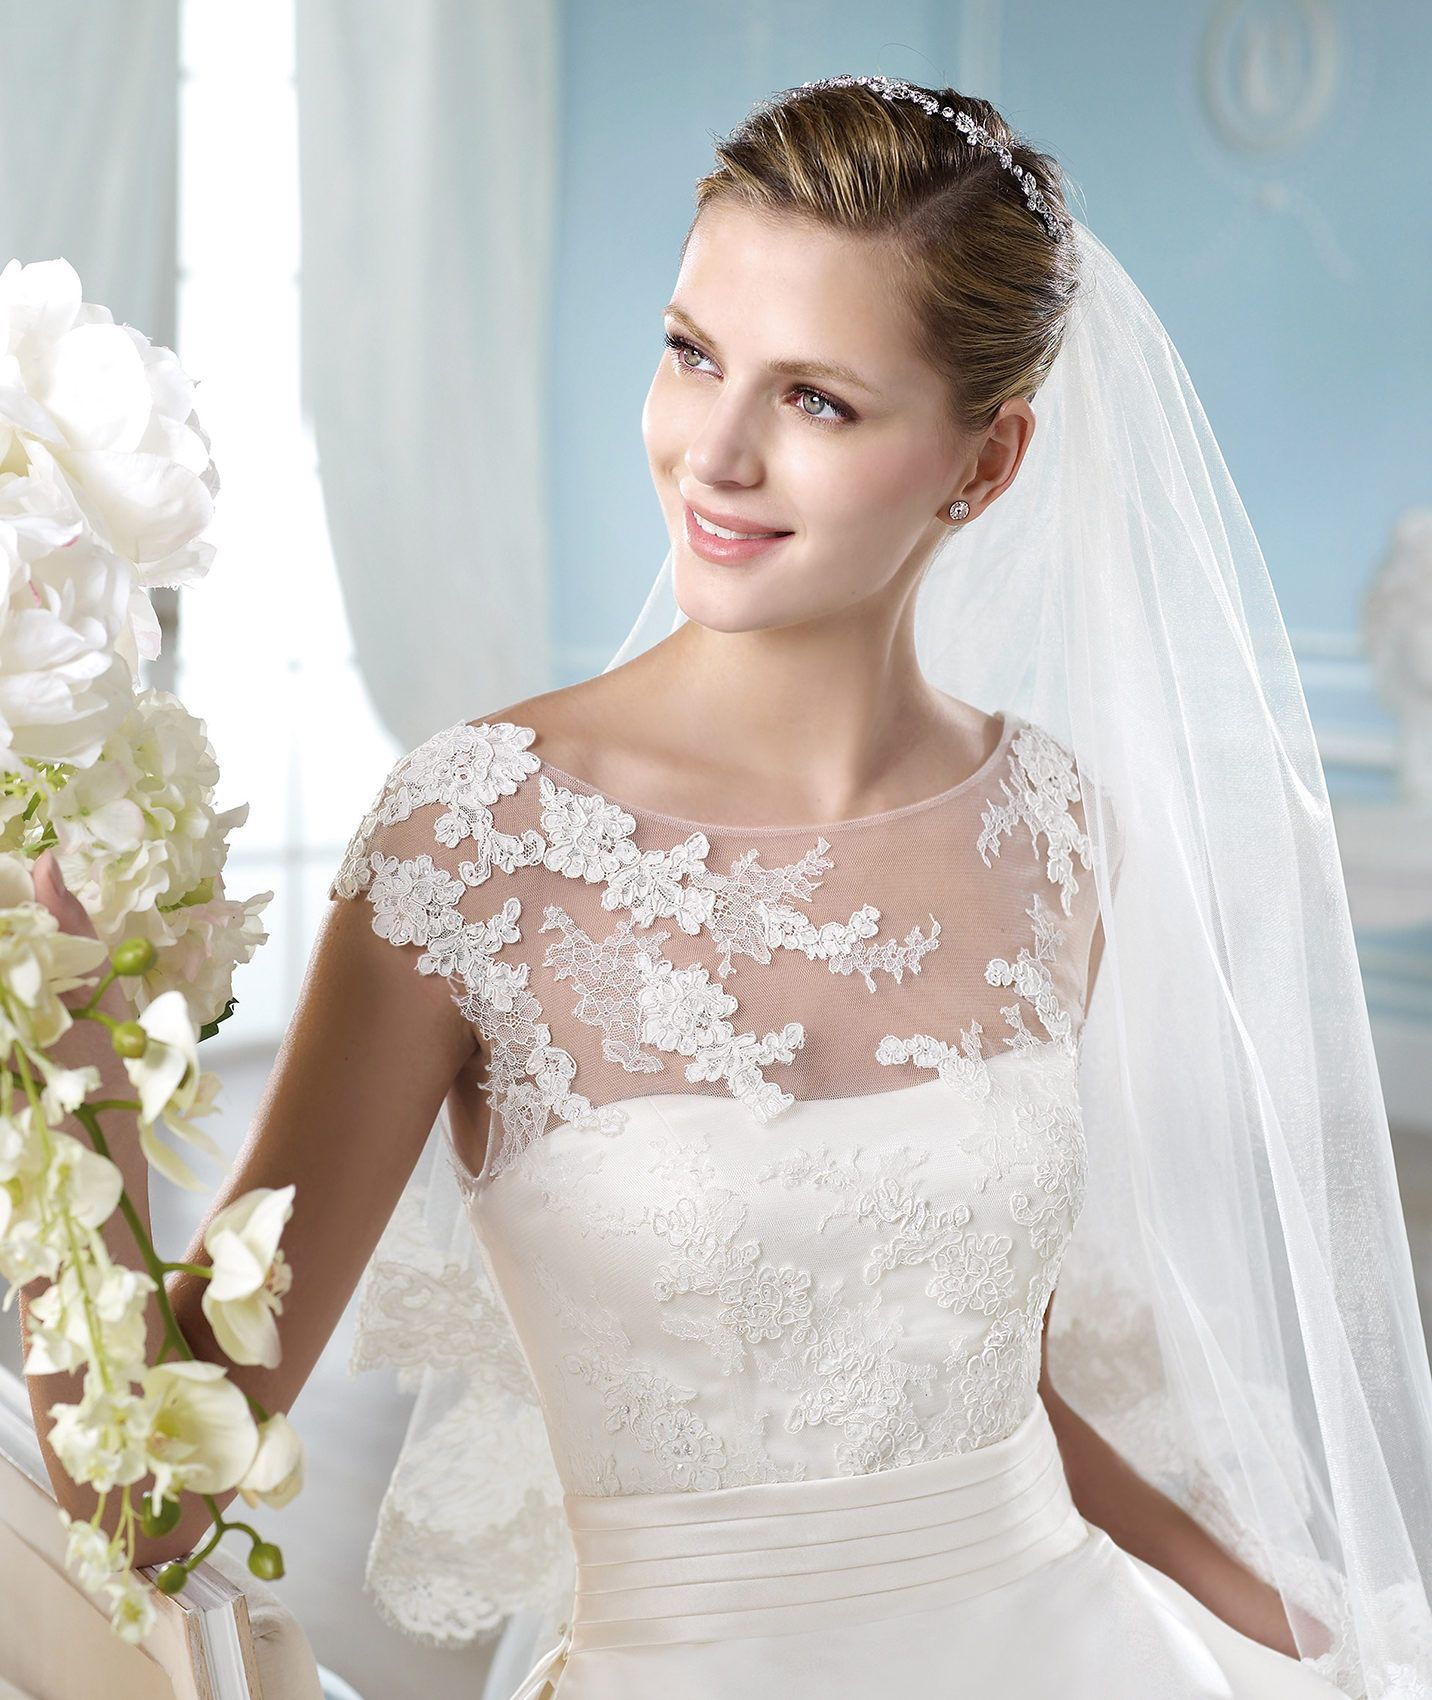 Wedding dresses with gold  casual wedding dresses gold bridesmaid dresses  Everything you need